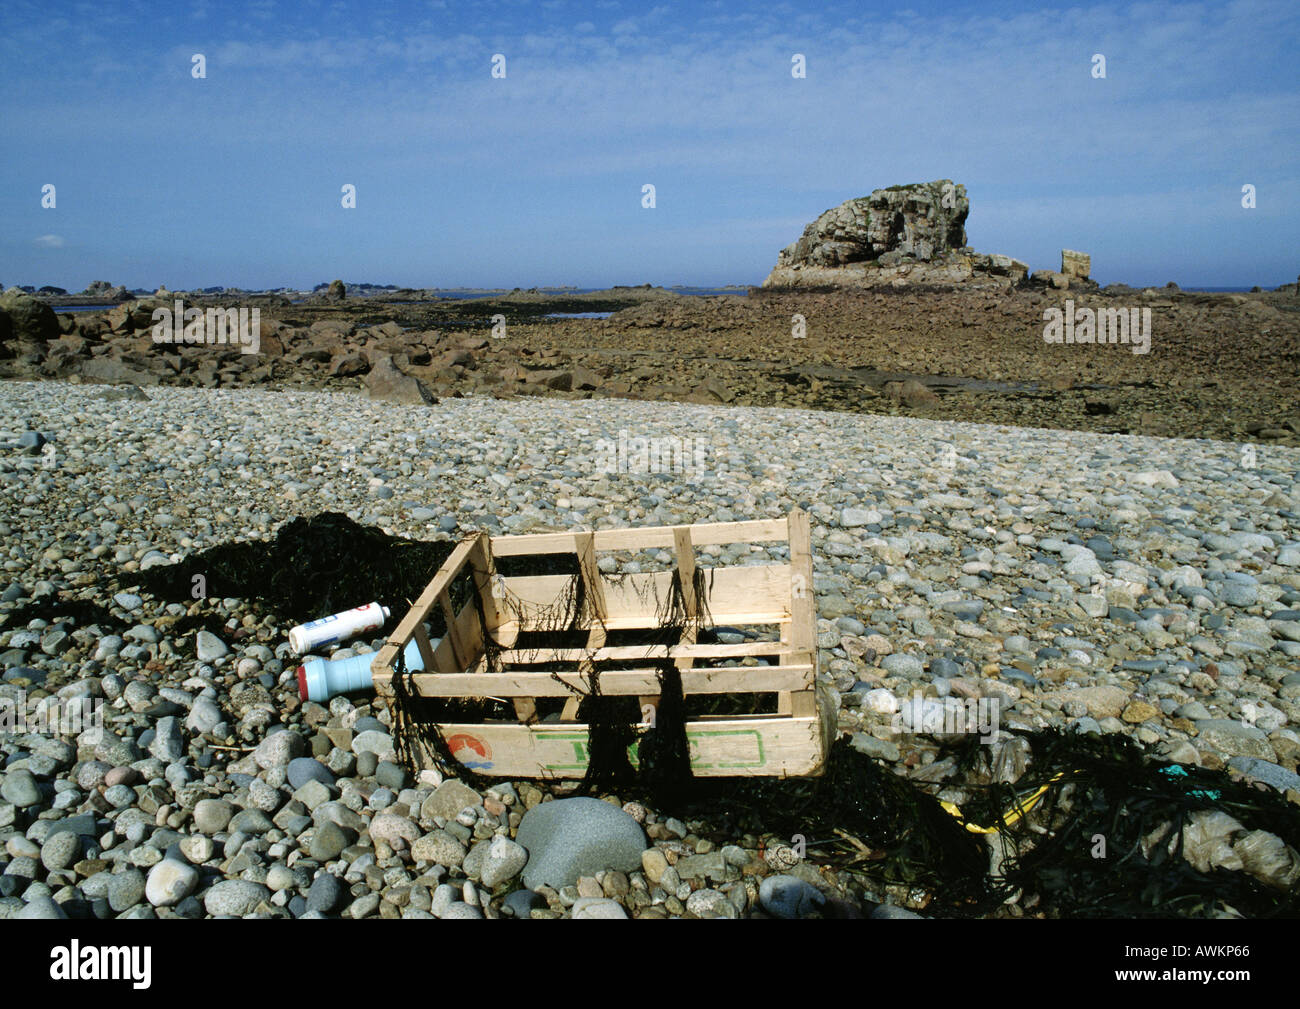 Trash scattered on rocky beach - Stock Image